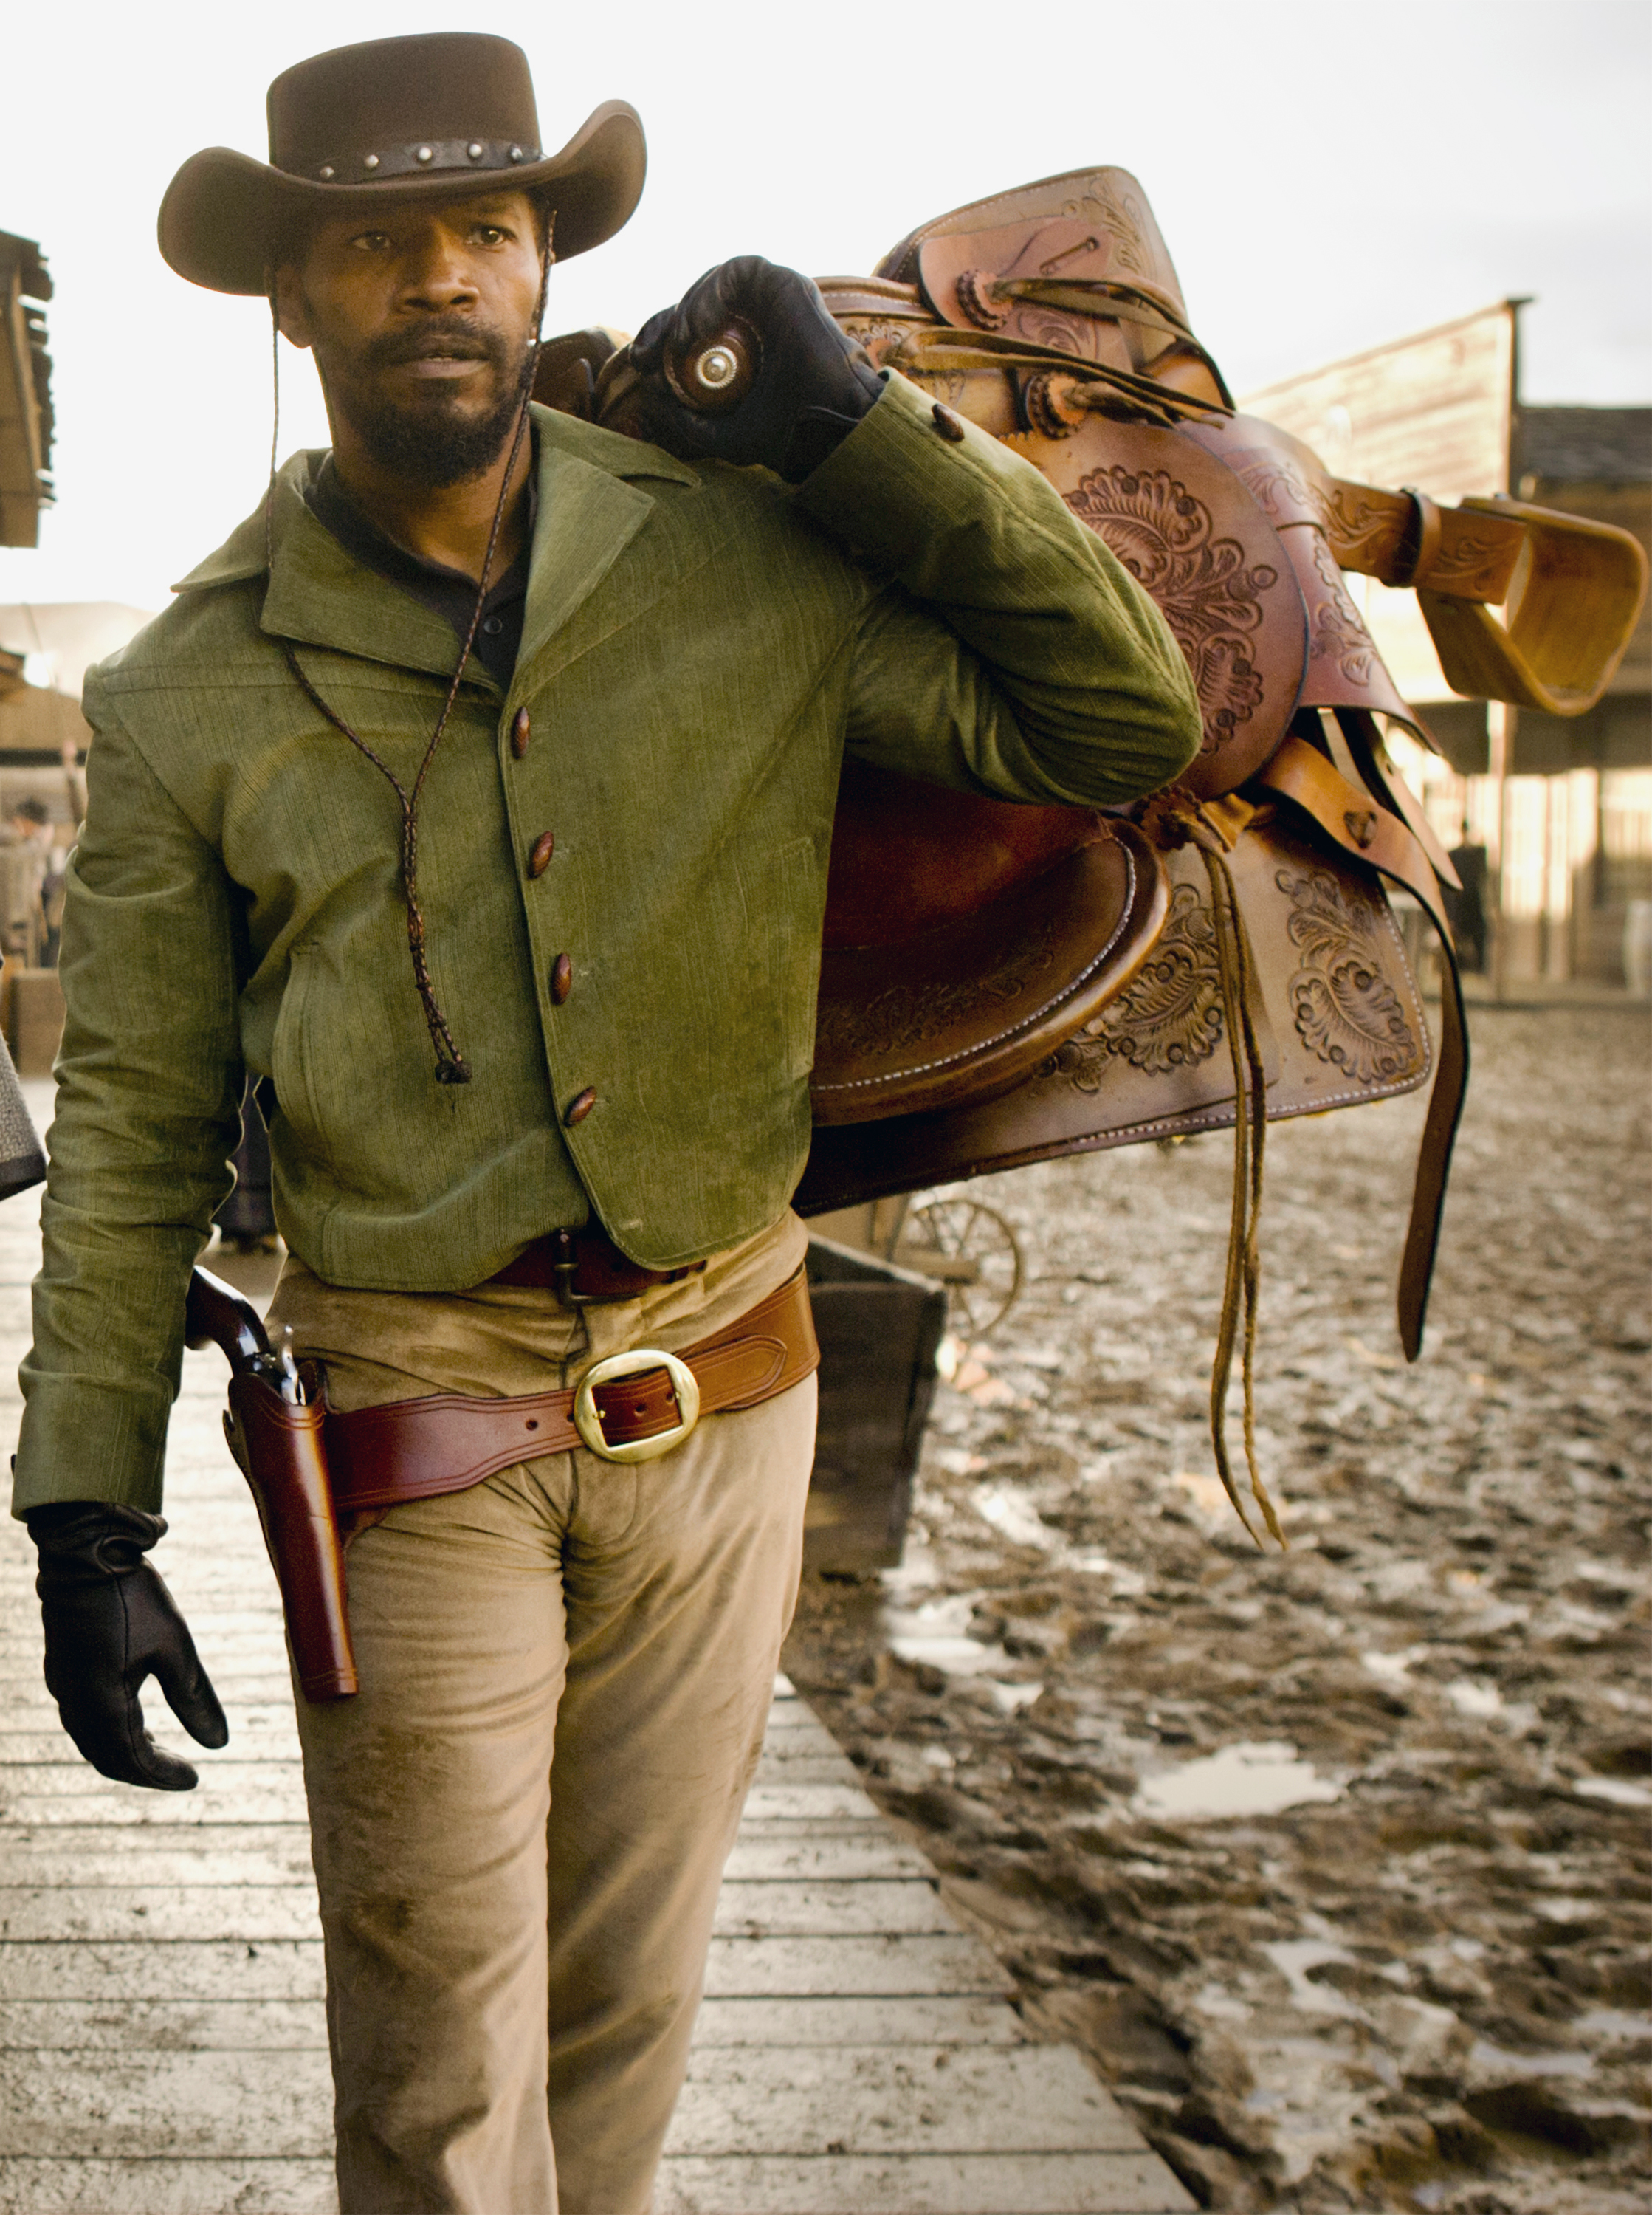 Django Unchained, 2012, Courtesy of Visiona Romantica, Inc., The Weinstein Company, Columbia Pictures & The Motion Picture Academy